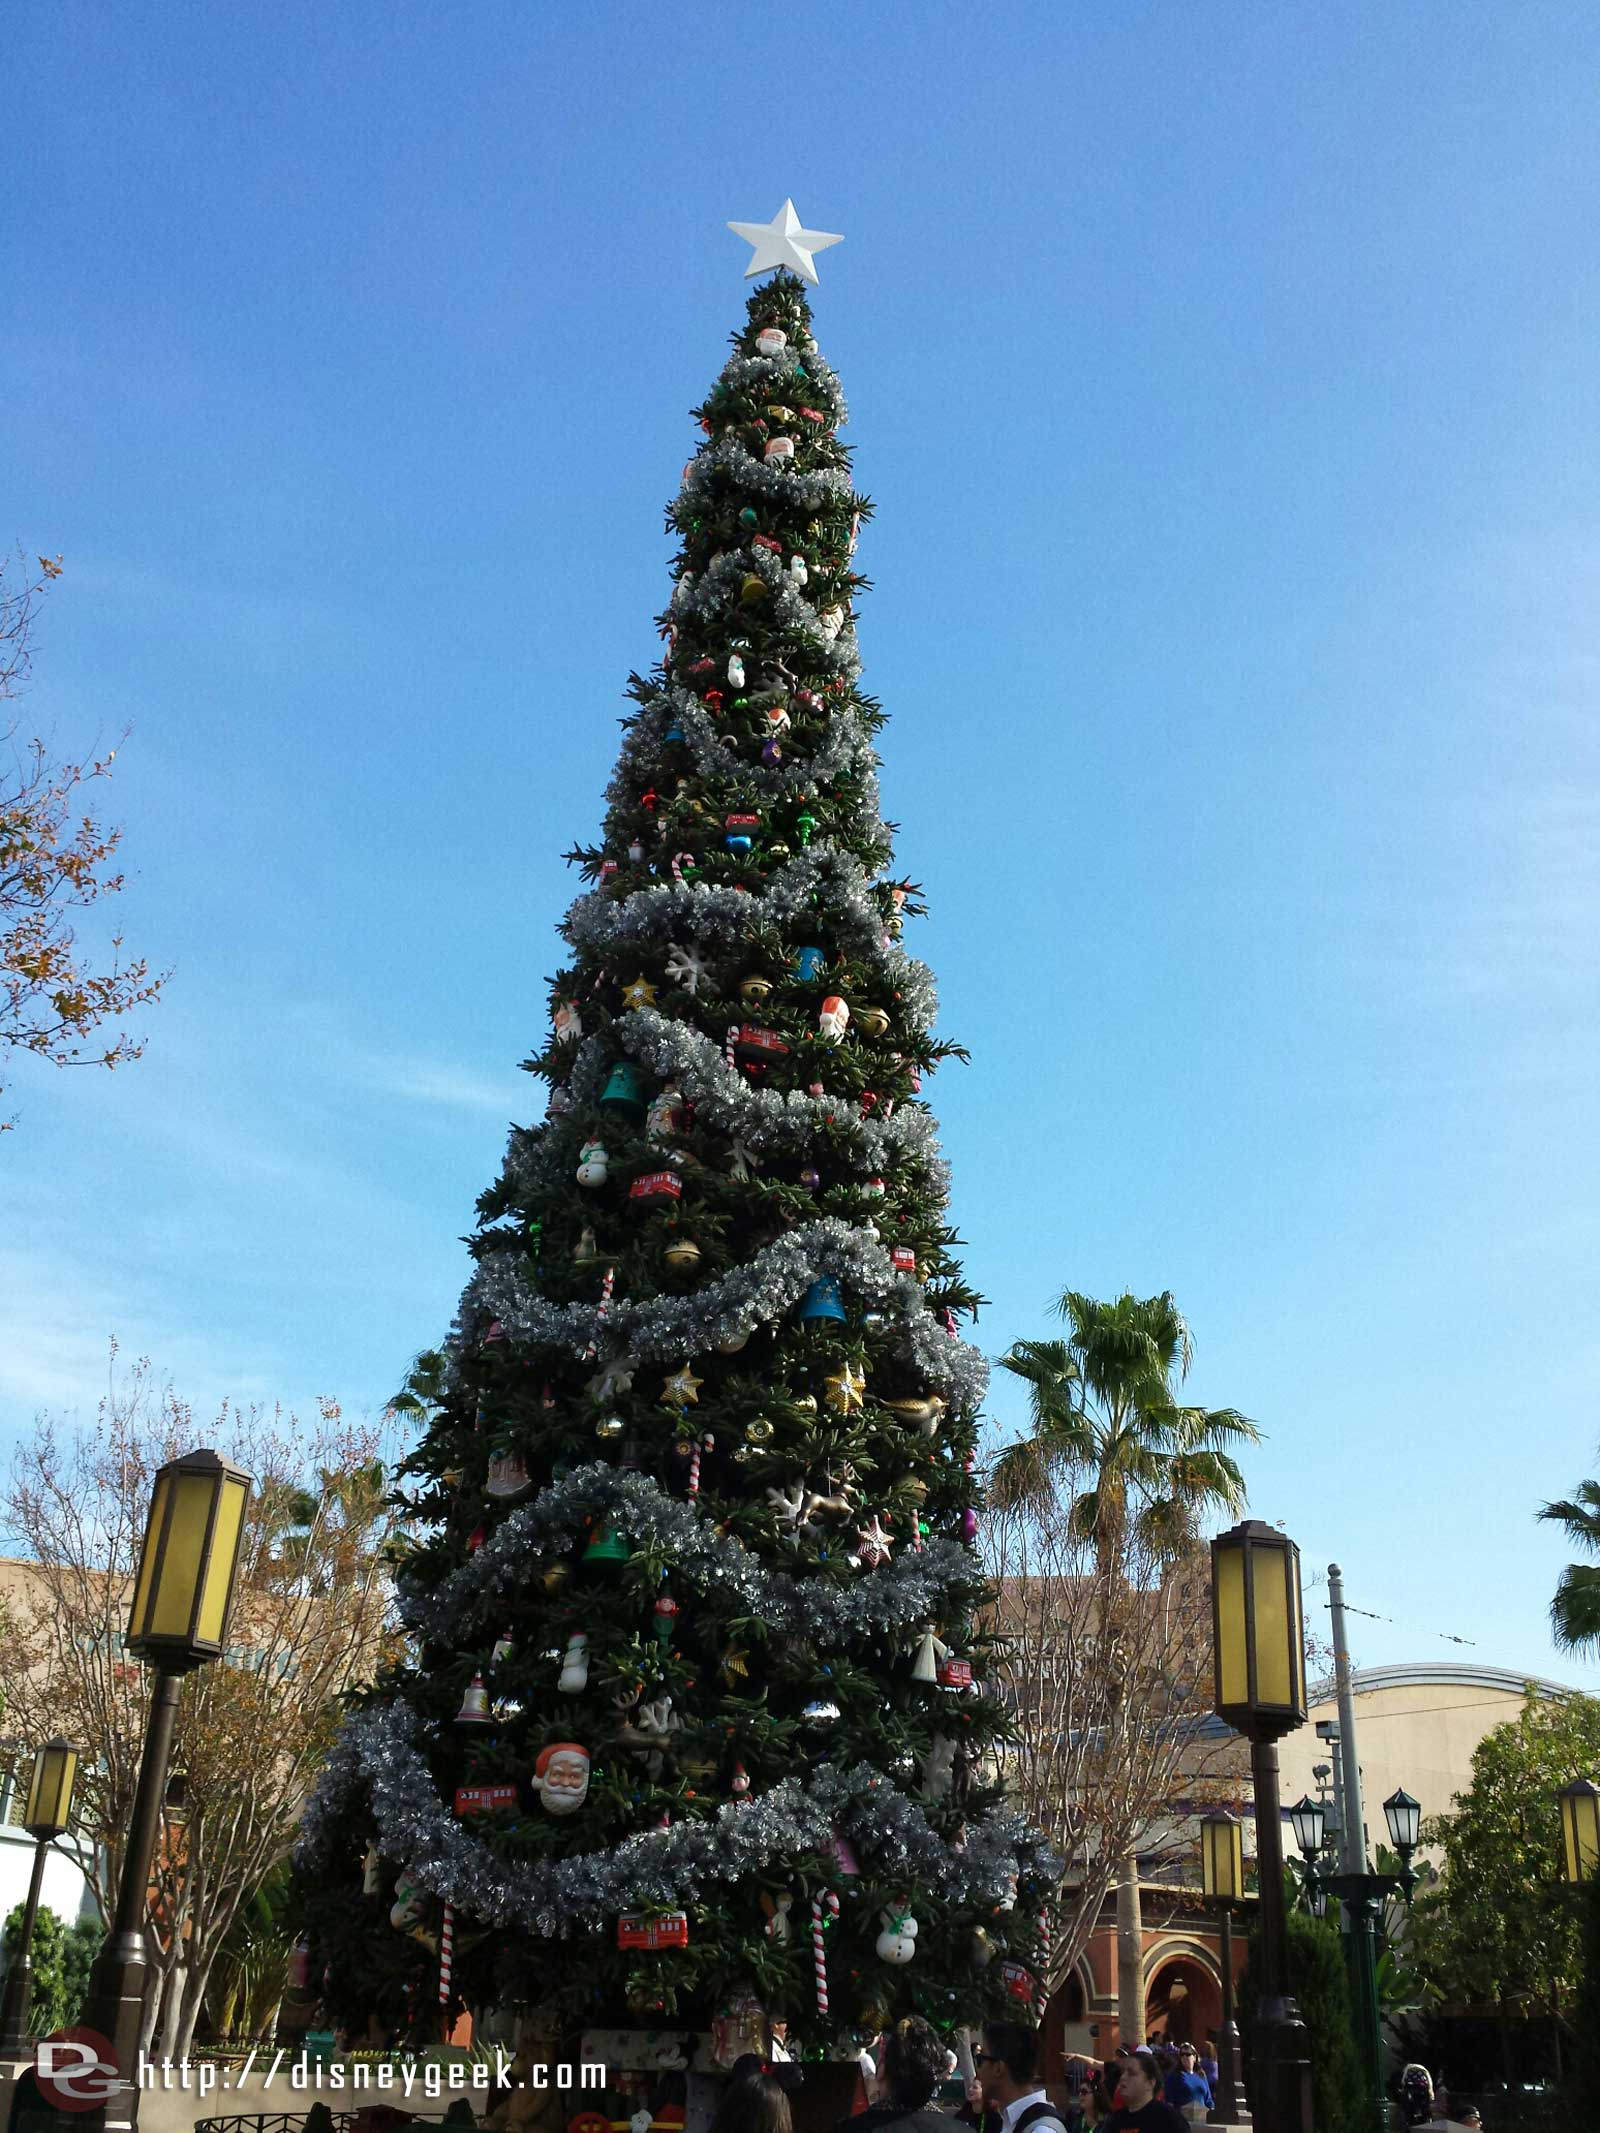 Back in California 1st stop today #BuenaVistaStreet here is the Christmas tree